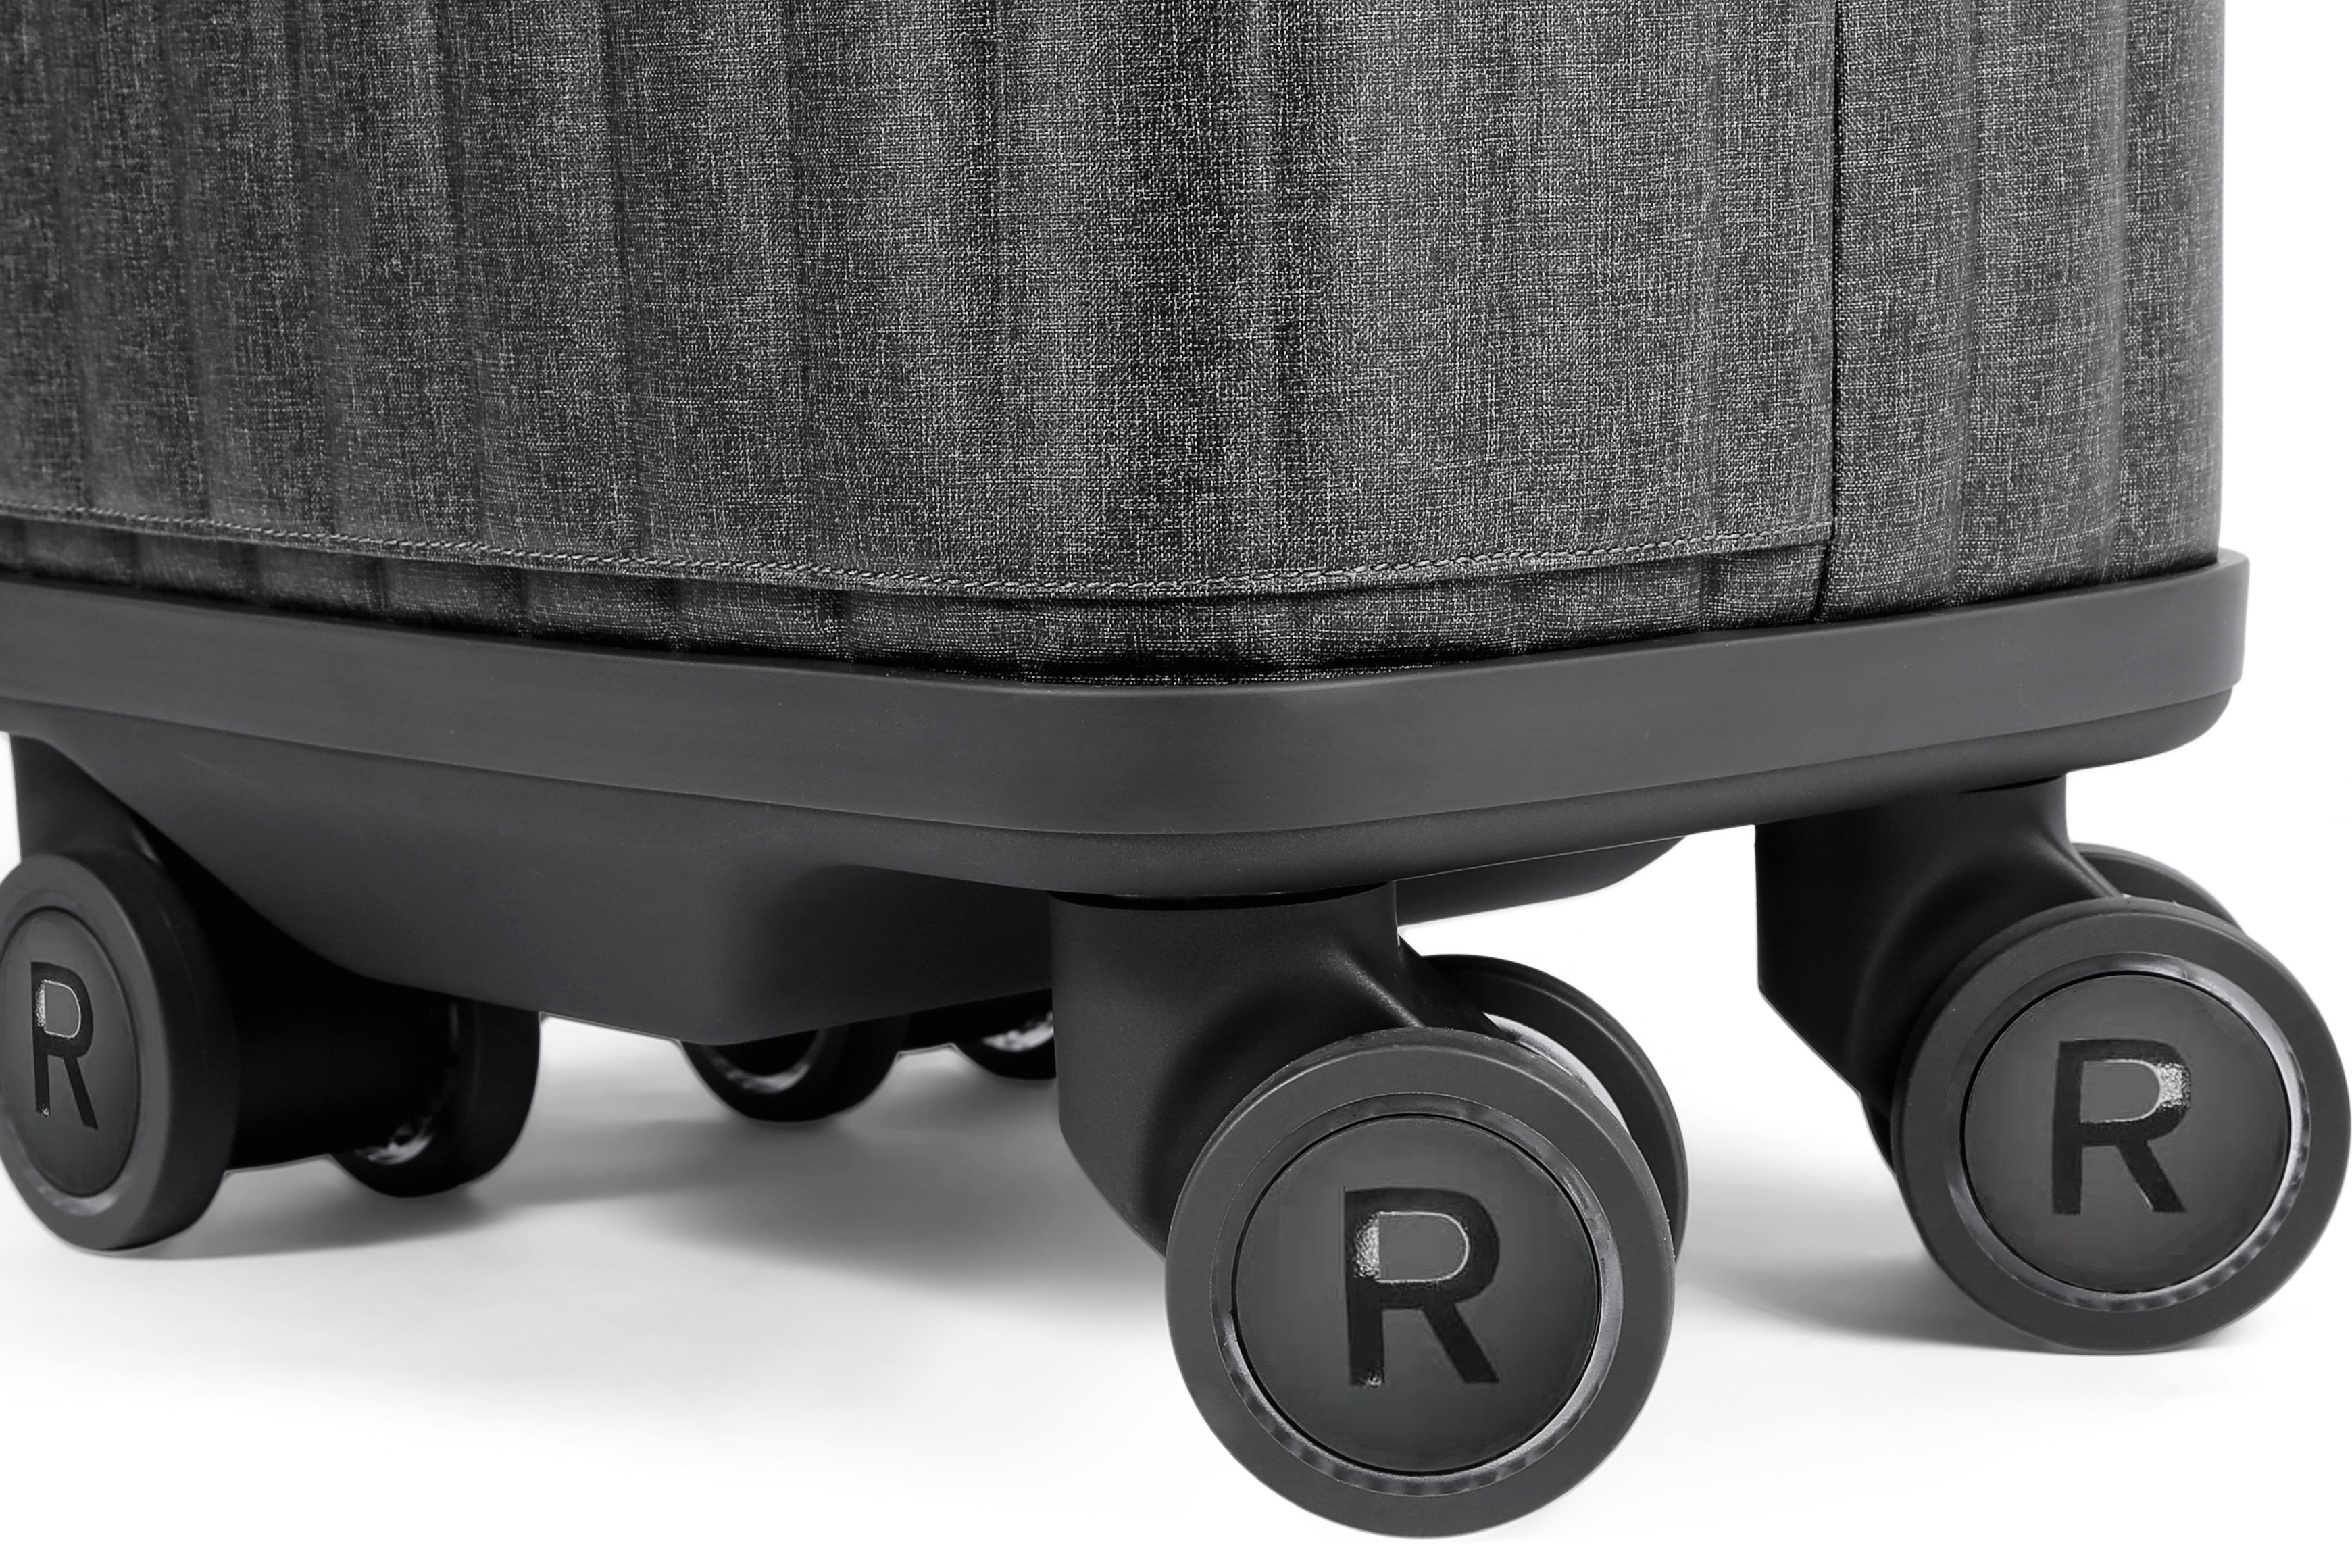 Suitcase uses its own wheels to charge its power bank